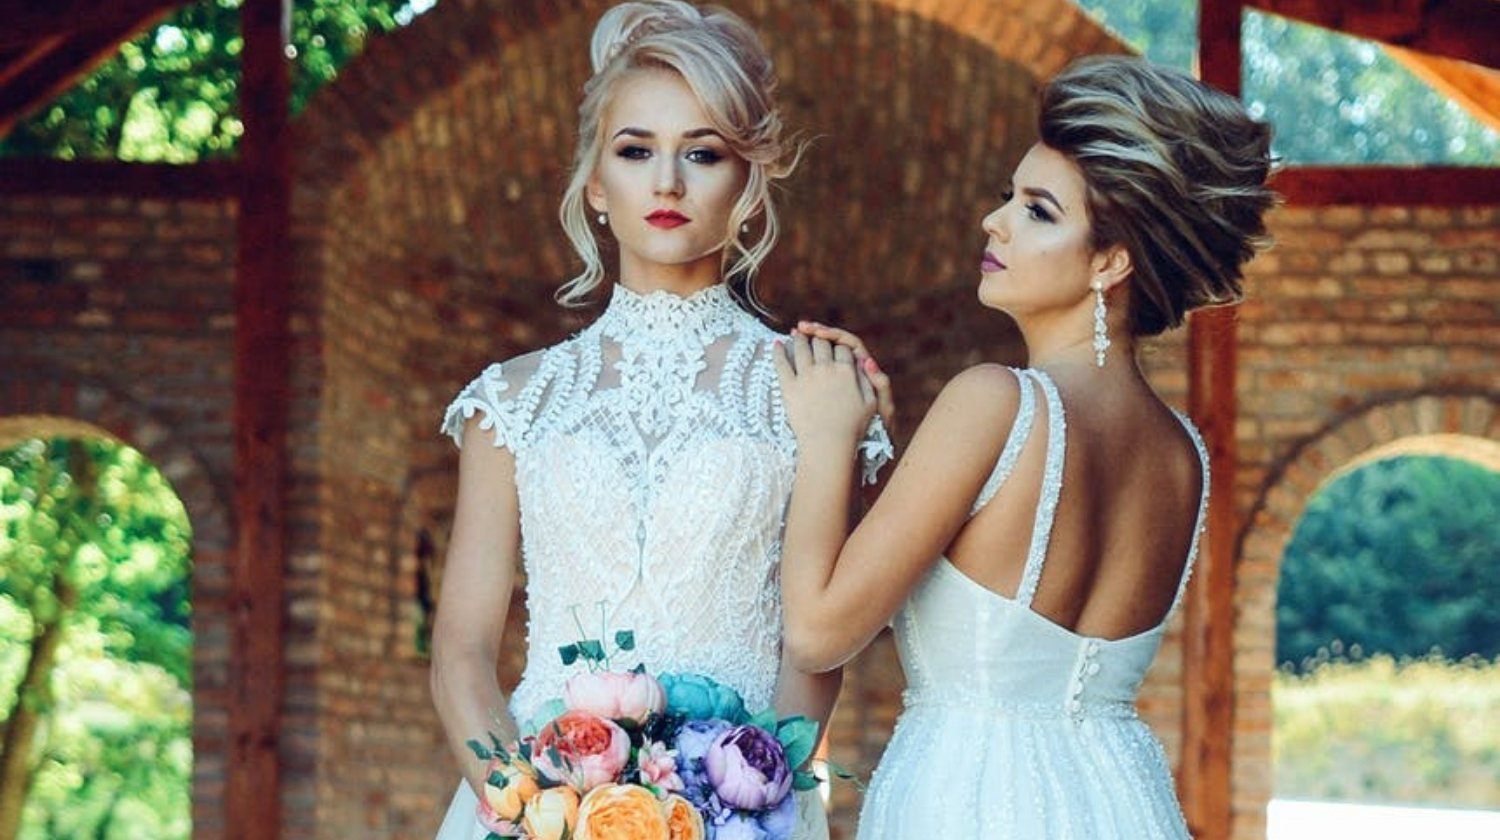 feature | Wedding Makeup Looks | Inspiration For Your Big Day!